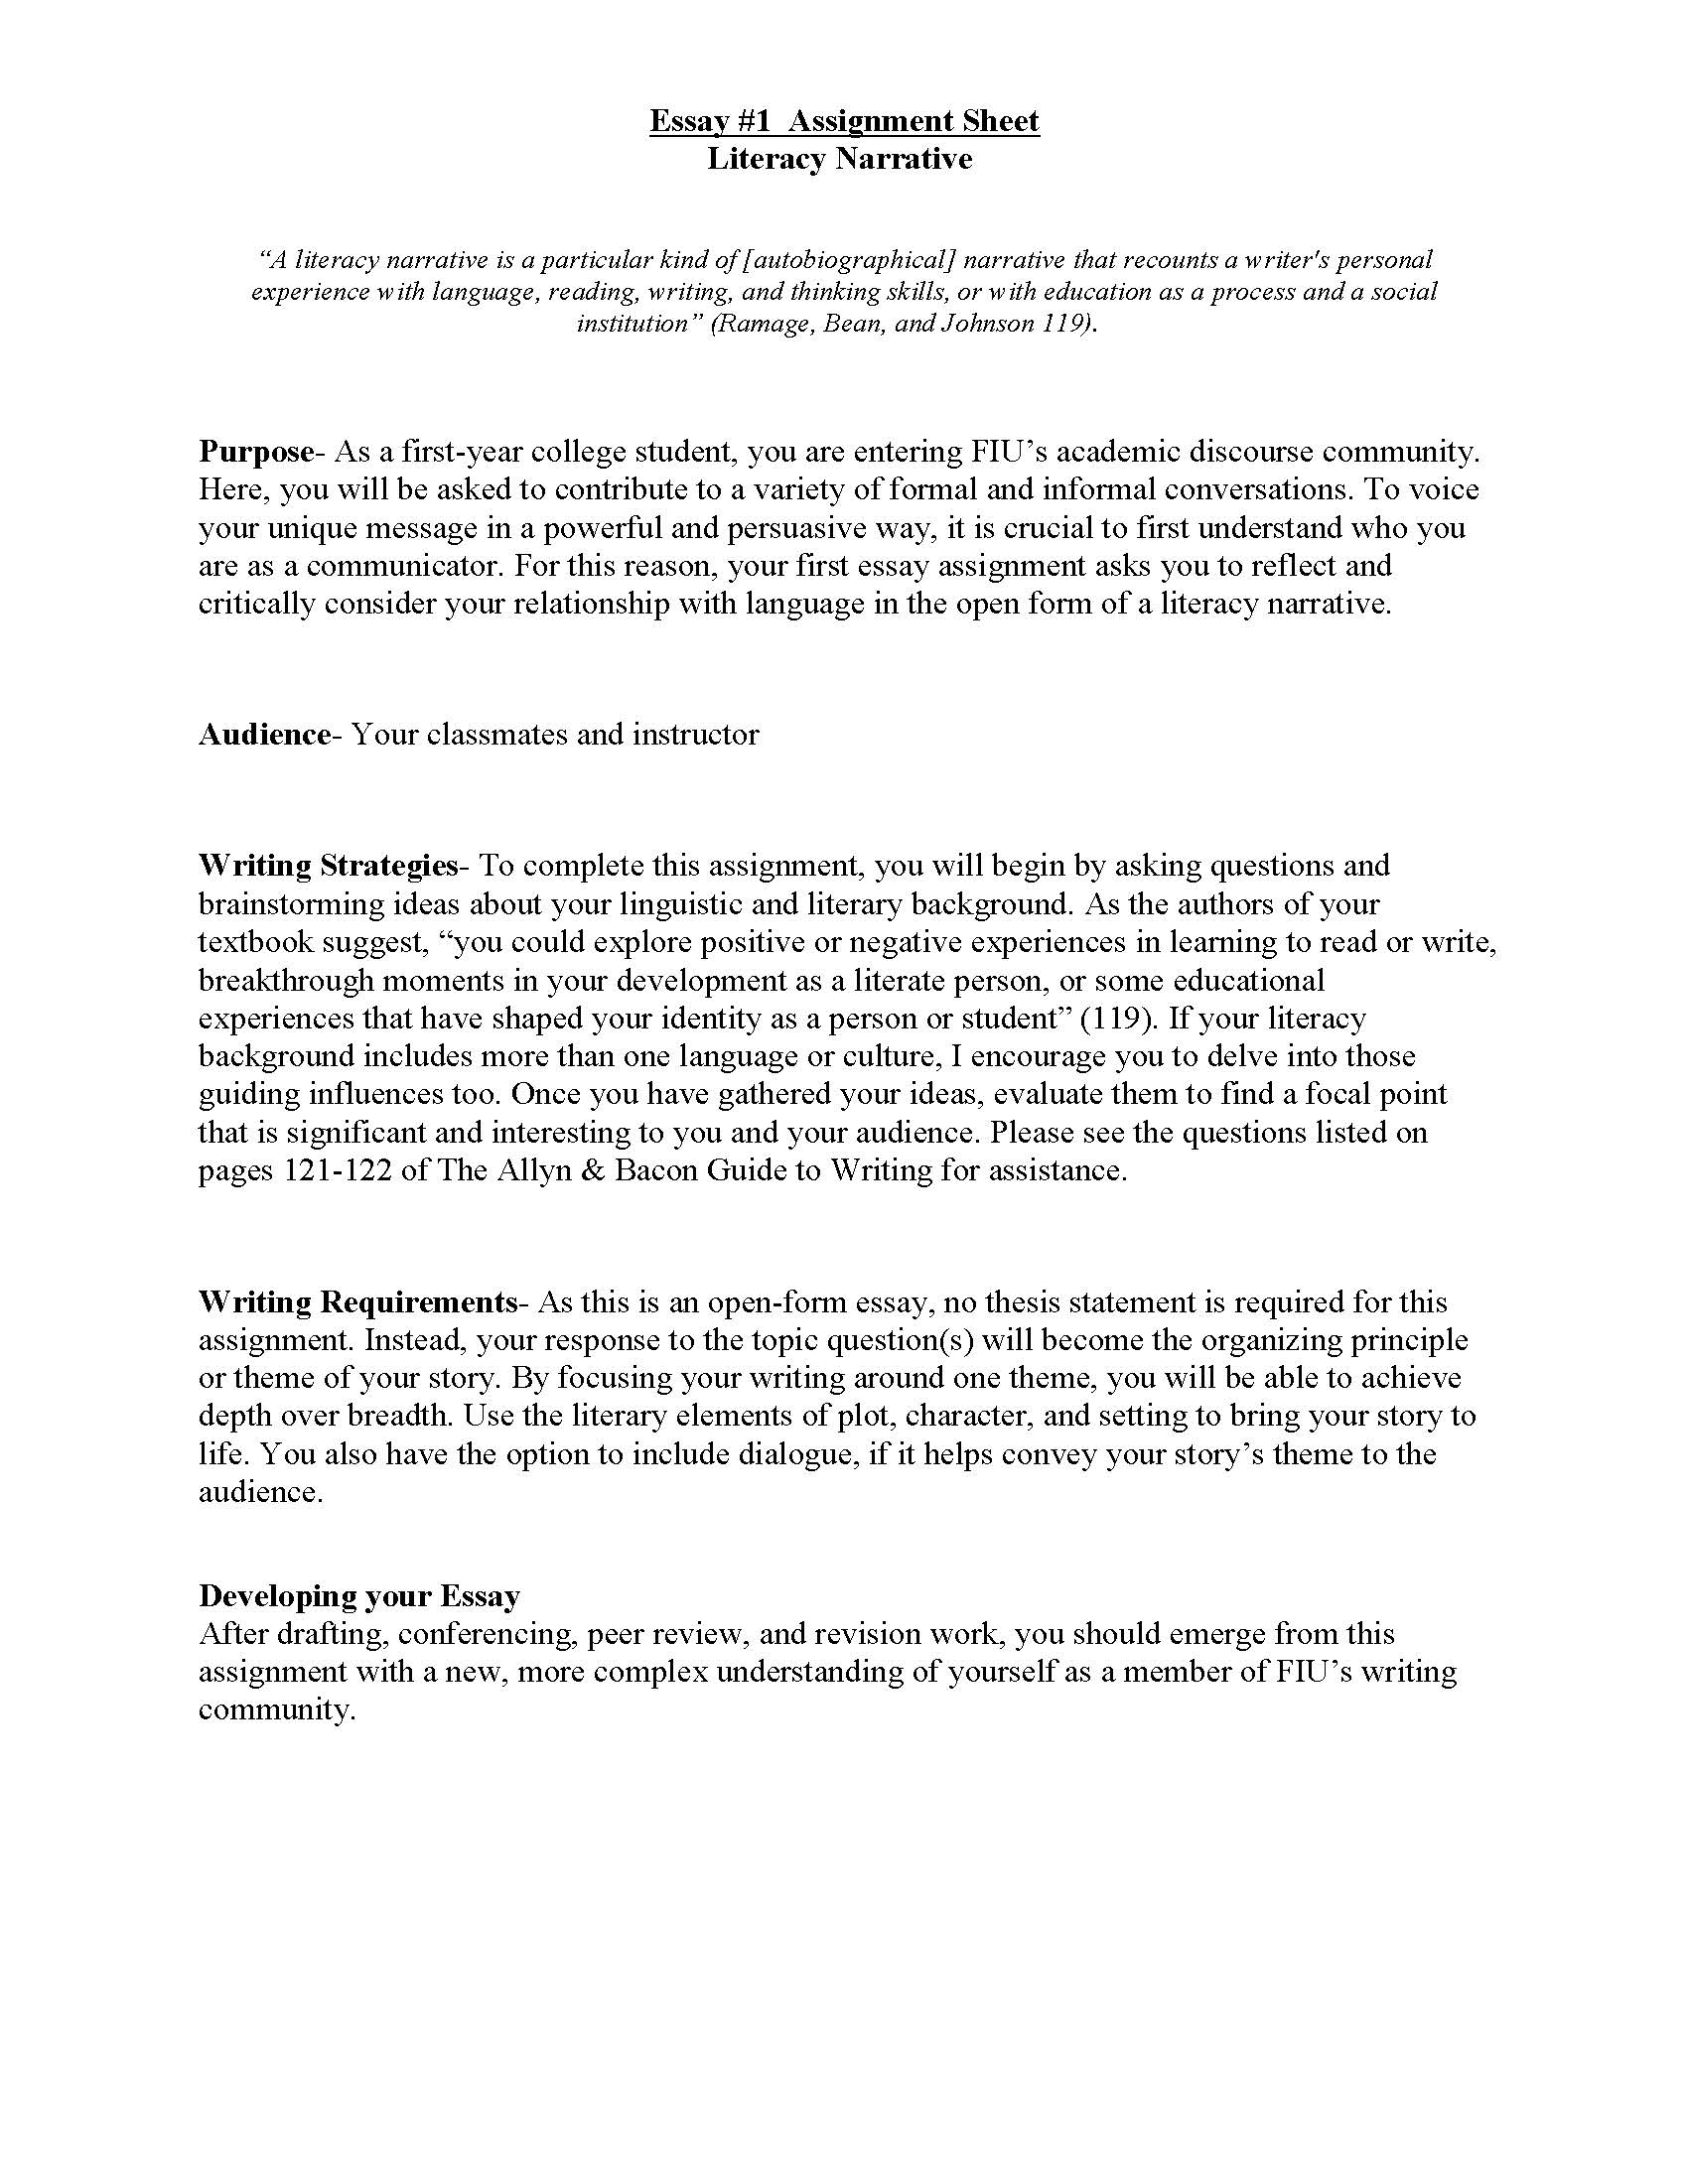 006 Personal Narrative Essays For Colleges Literacy Unit Assignment Spring 2012 Page 1 Phenomenal Essay Examples Full